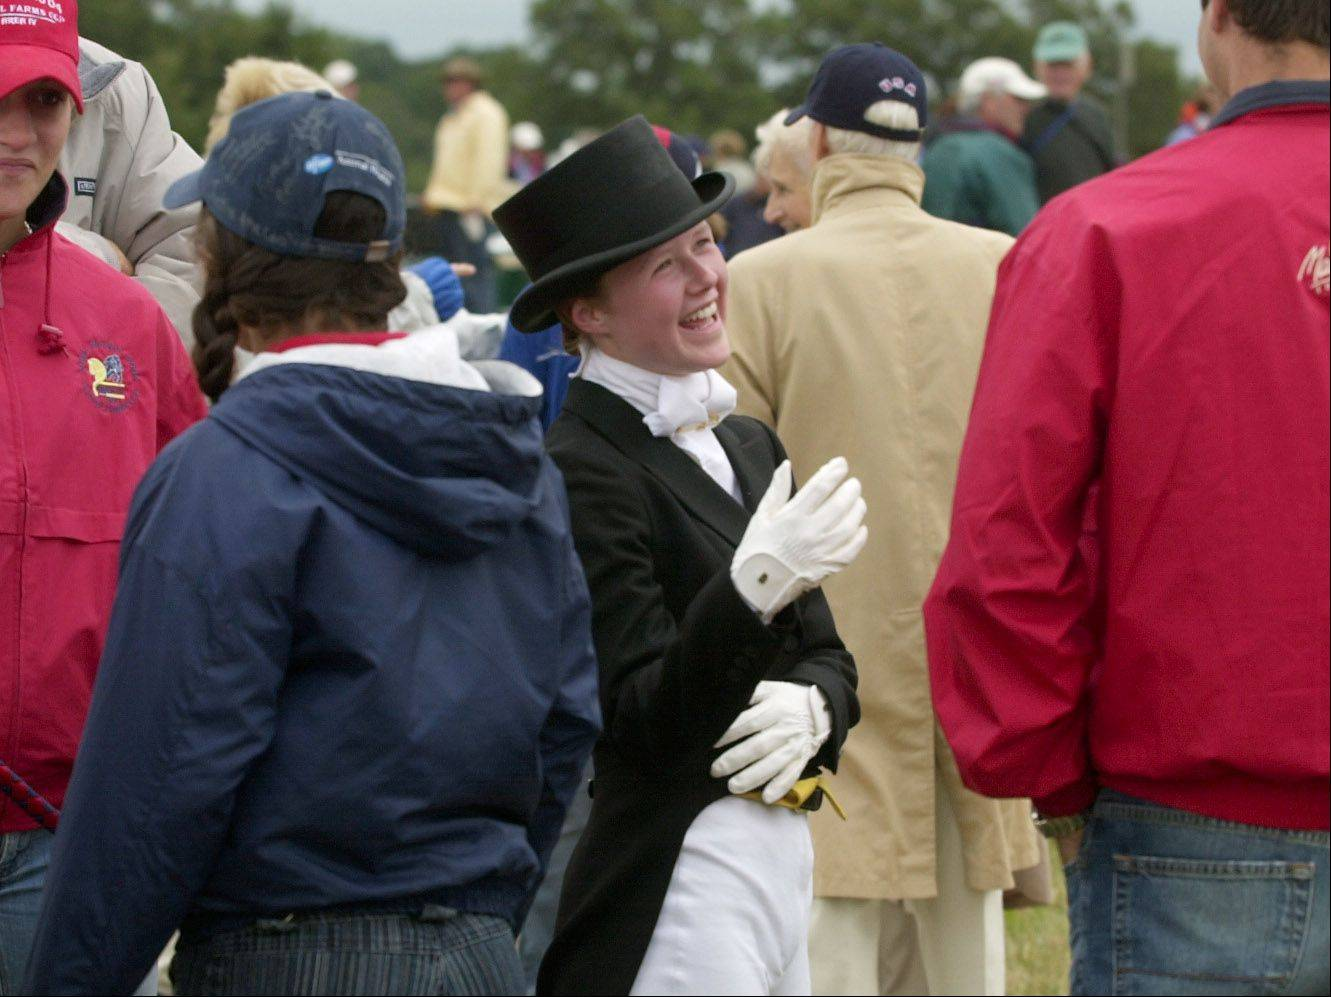 Ashley Smith of Barrington Hills chats with friends and family after competing in a dressage event at the 2004 North American Young Riders' Championships at Tempel Farms in Wadsworth. Horse competitions such as this are far more common than the controversial quarter horse races in McHenry County that officials are looking to regulate in coming months.